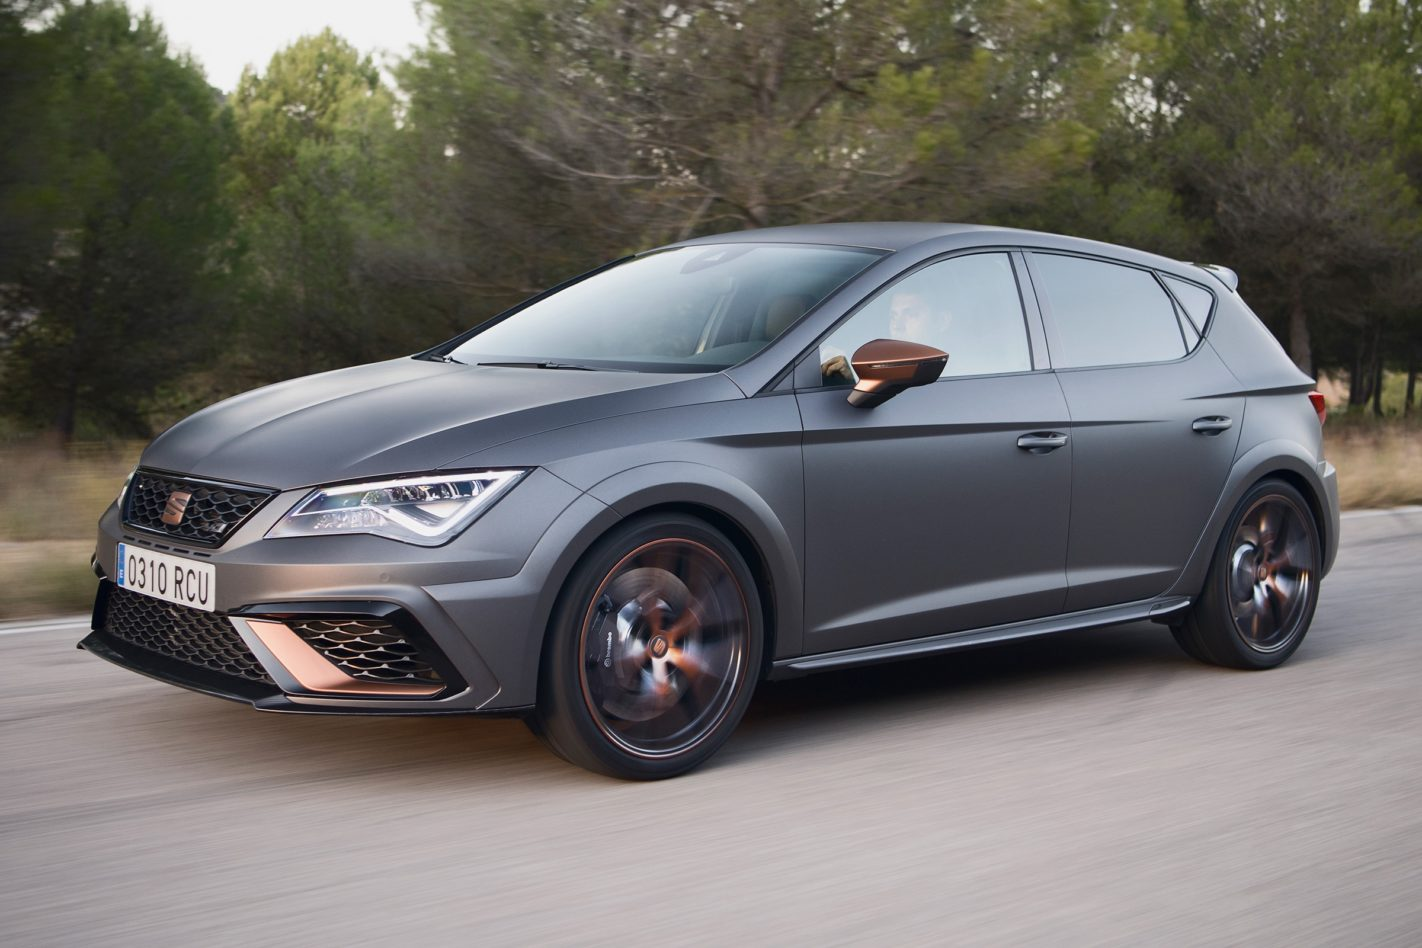 2019 SEAT Leon Tail Light High Resolution Wallpapers Auto Car Rumors 1422x948